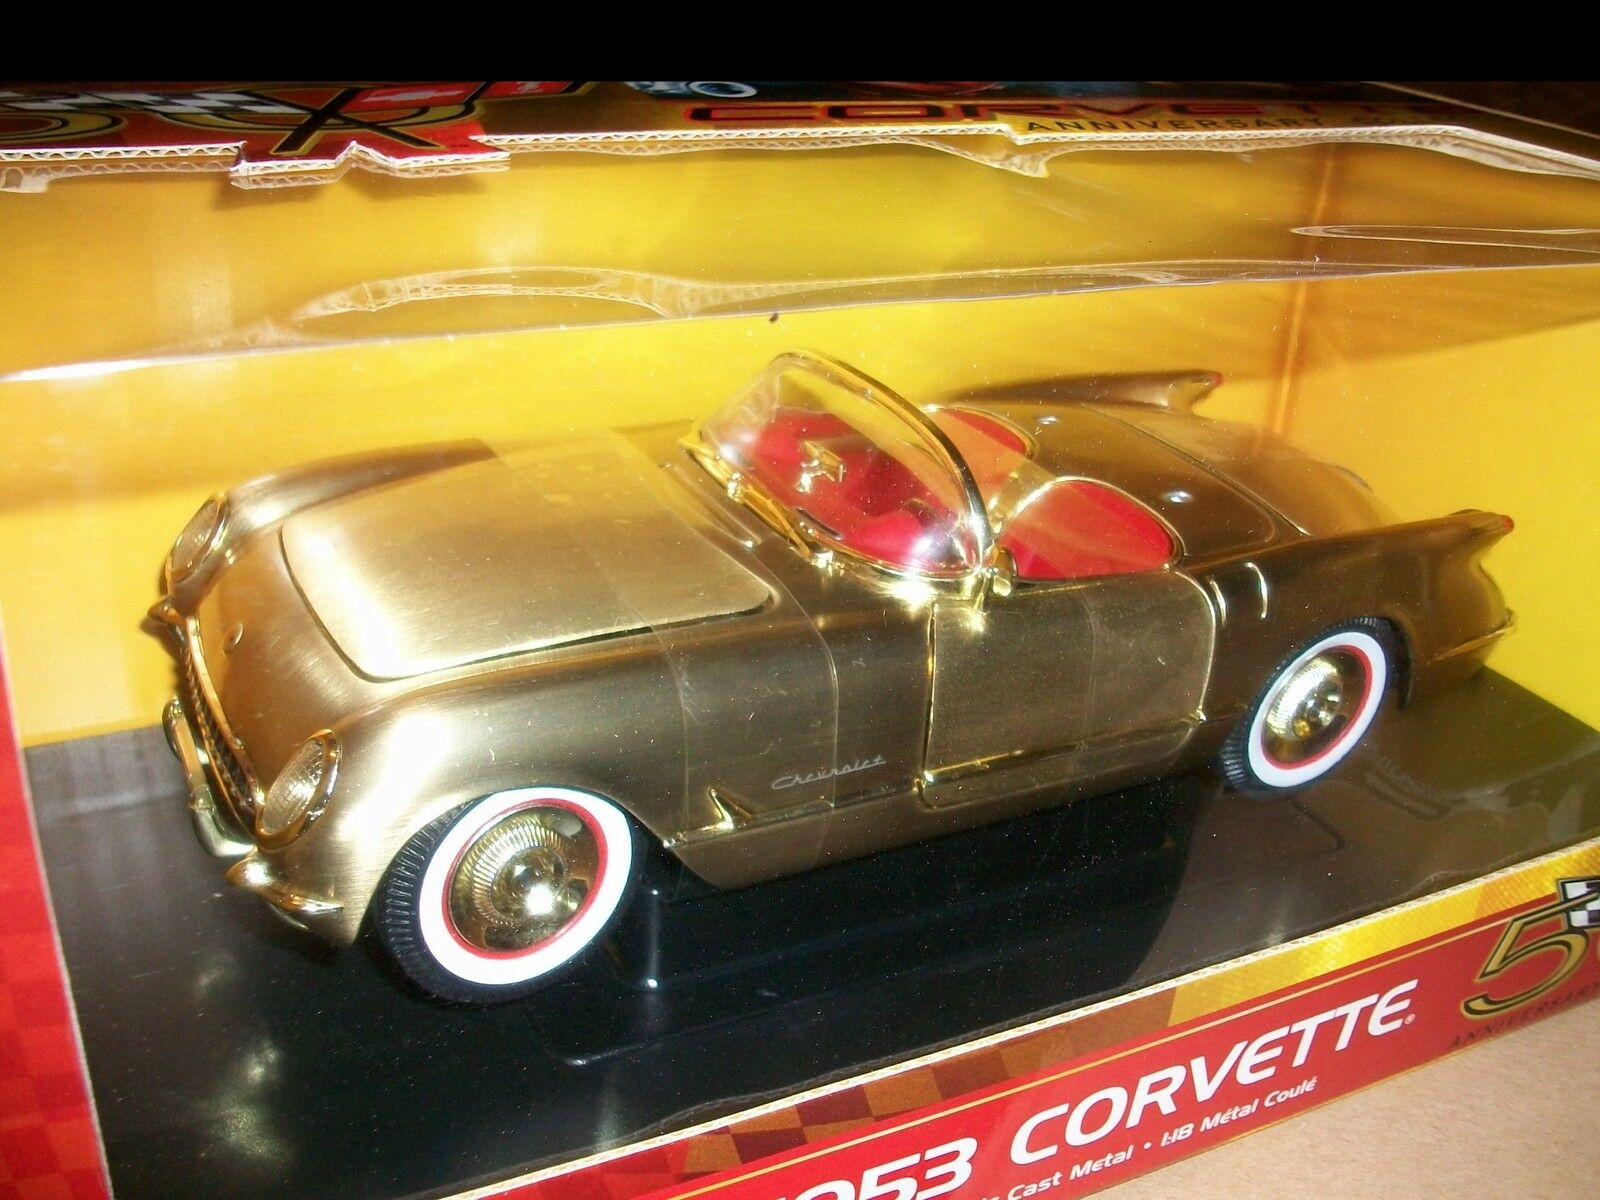 1953 1953 1953 Corvette Brushed gold 1 18 Ertl American Muscle 33449 6f15a5